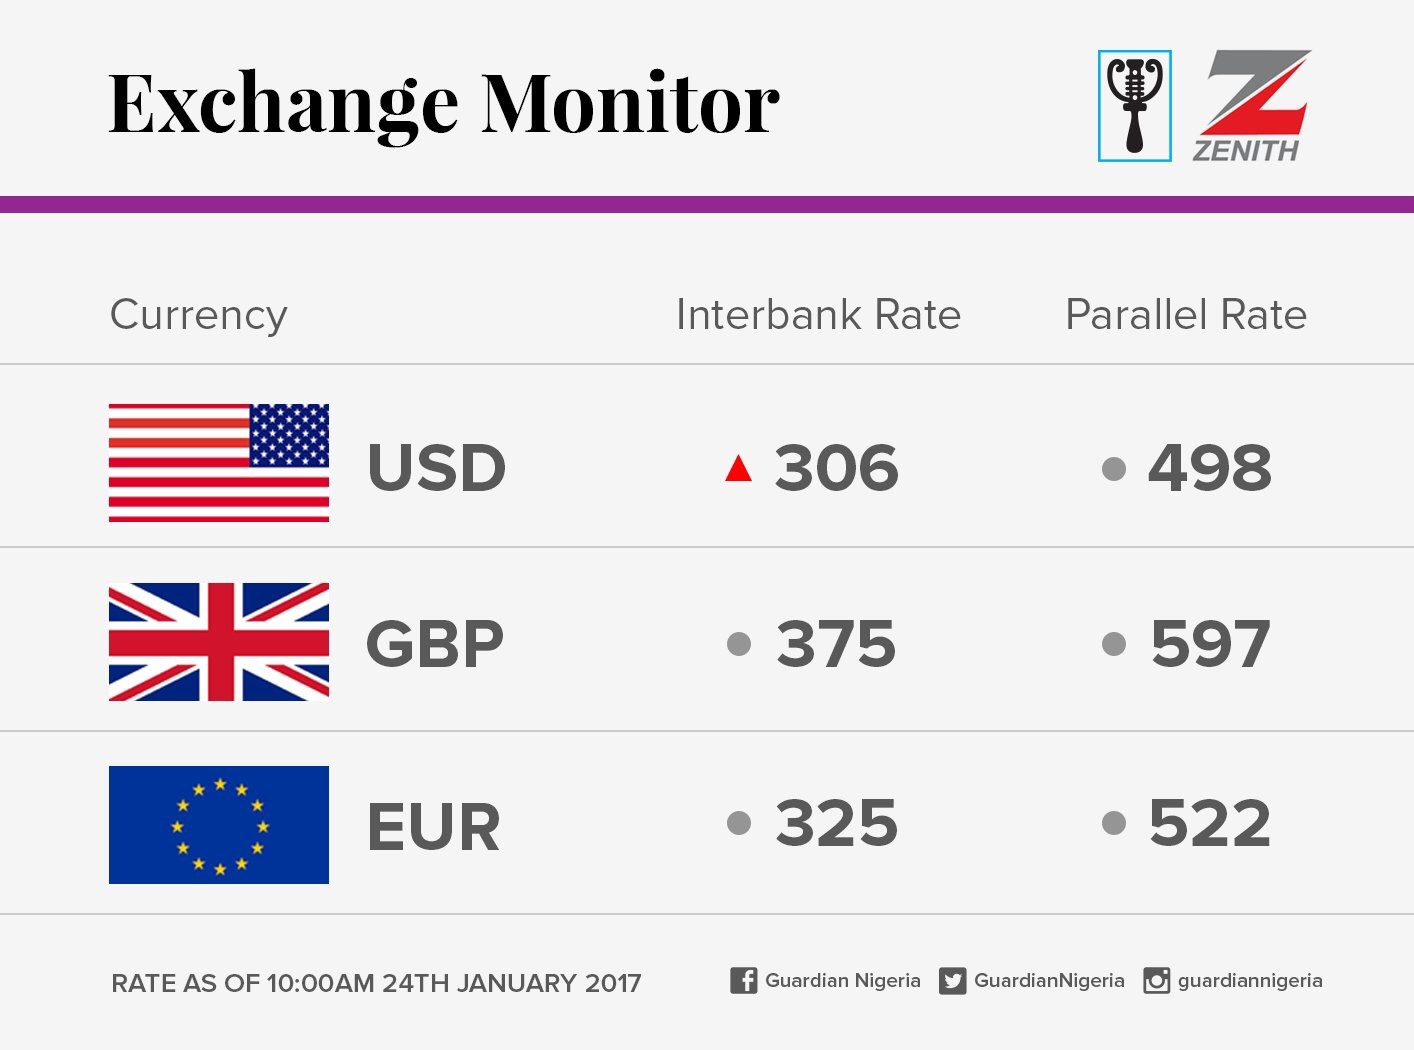 Exchange Rate For 24th January 2017